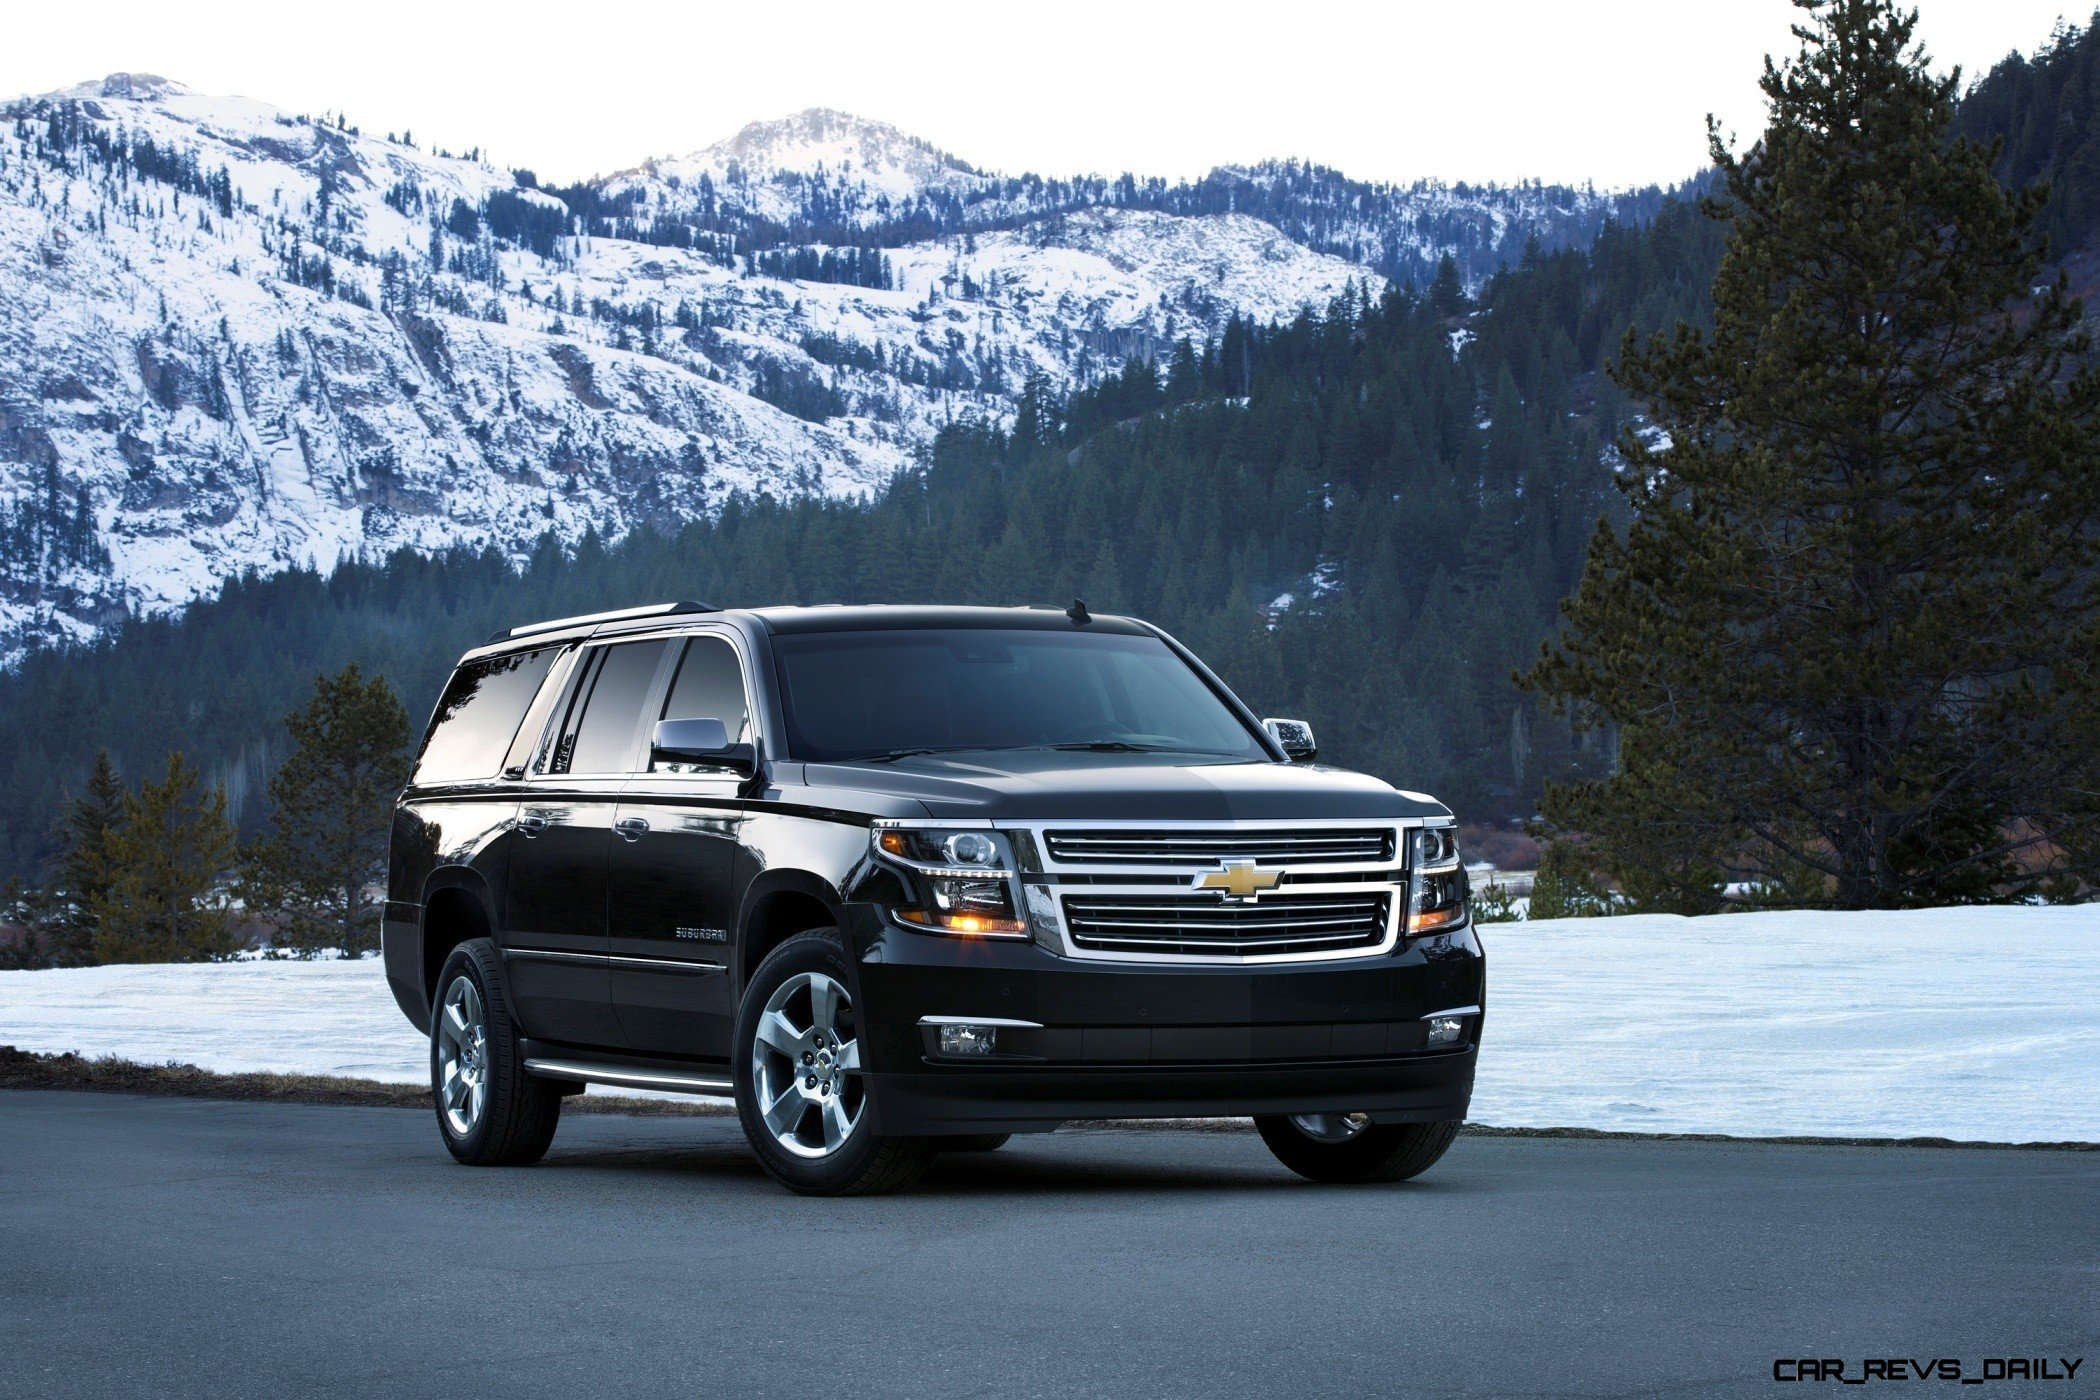 2015 Chevrolet Tahoe And Suburban -- Clean Powder Landing